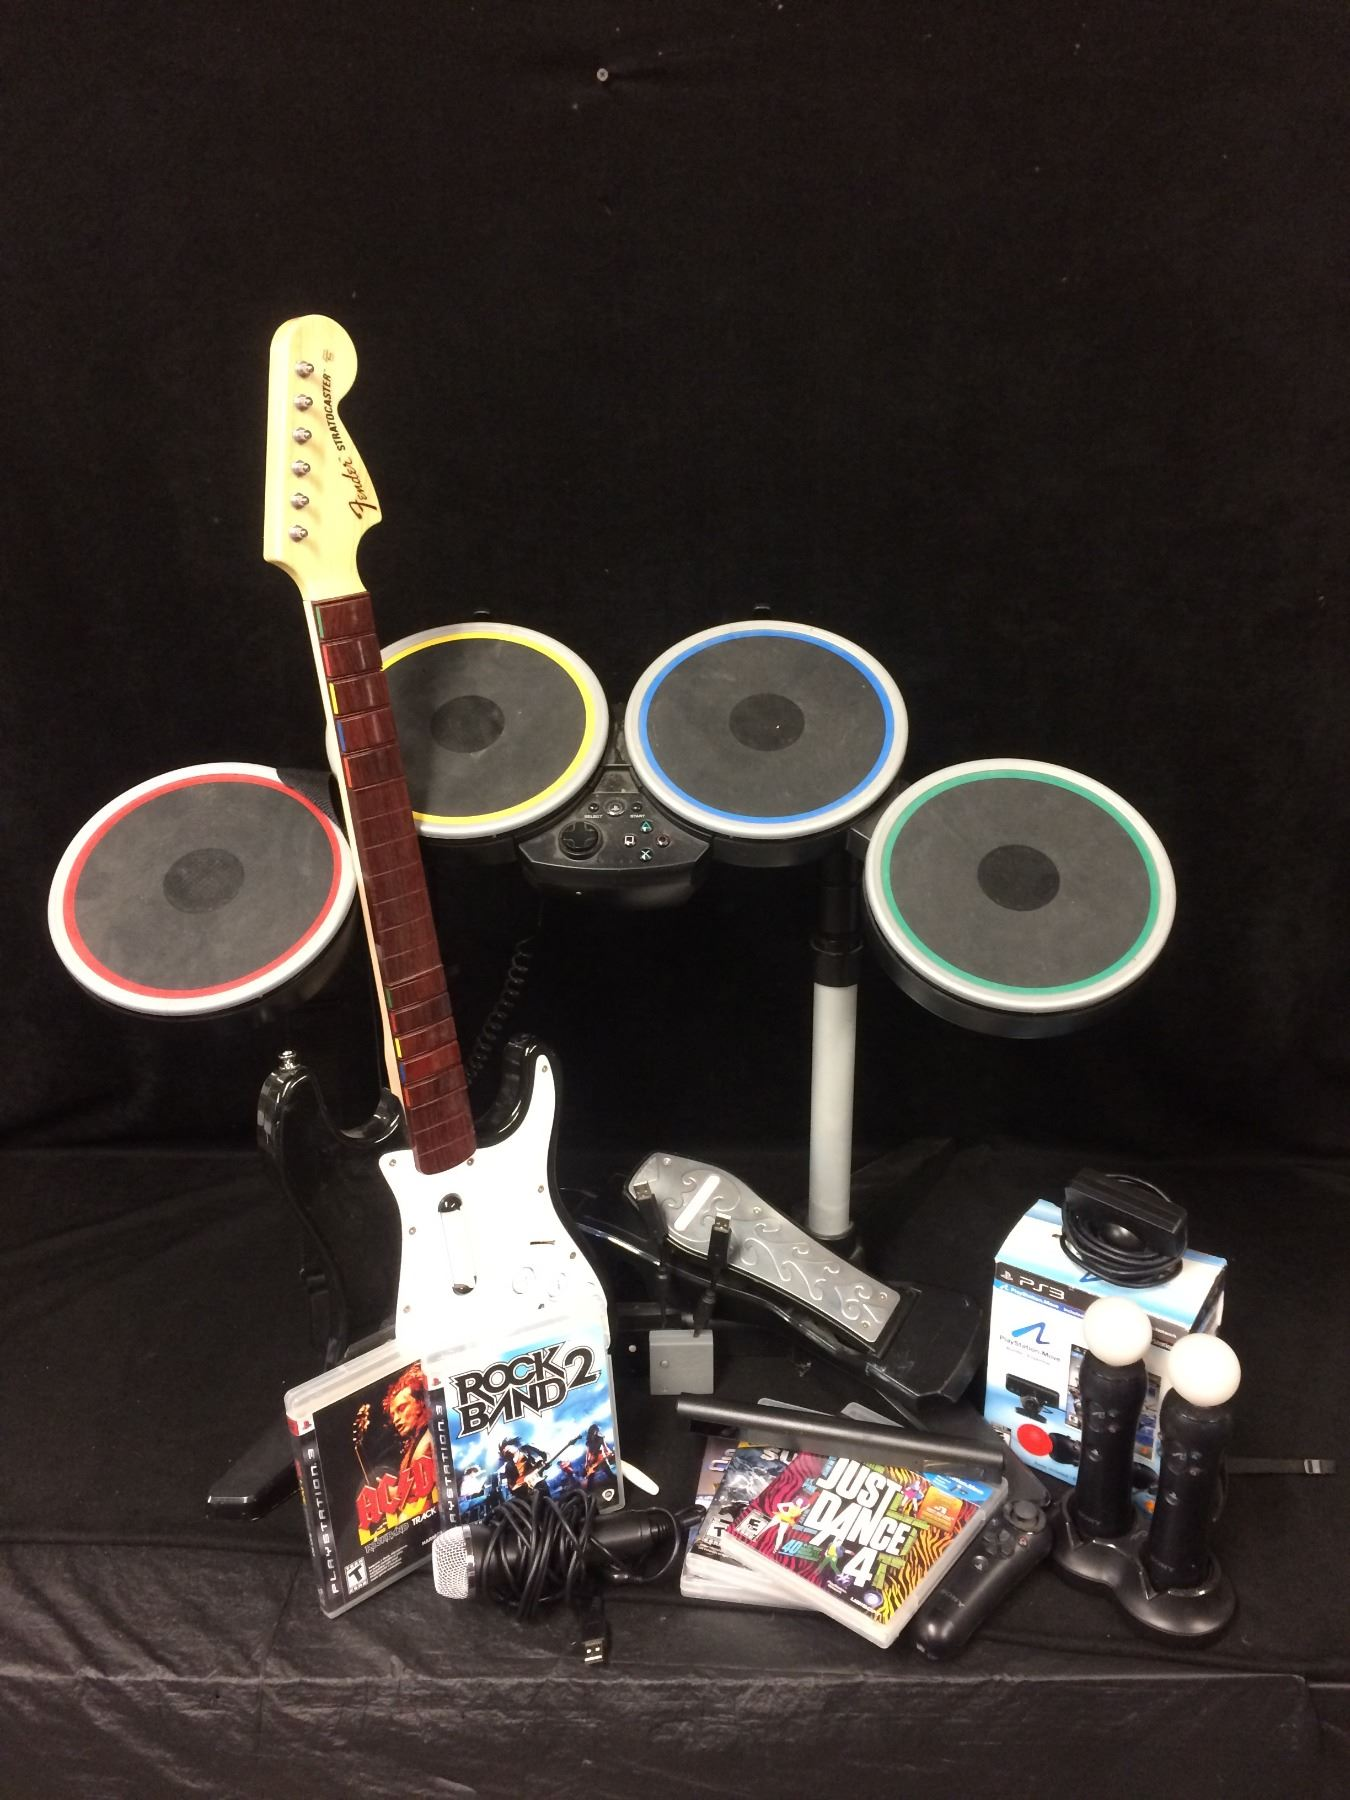 Rock Band 2 Wireless Drum Set, Guitar, Game Xbox 360 Bundle Lot